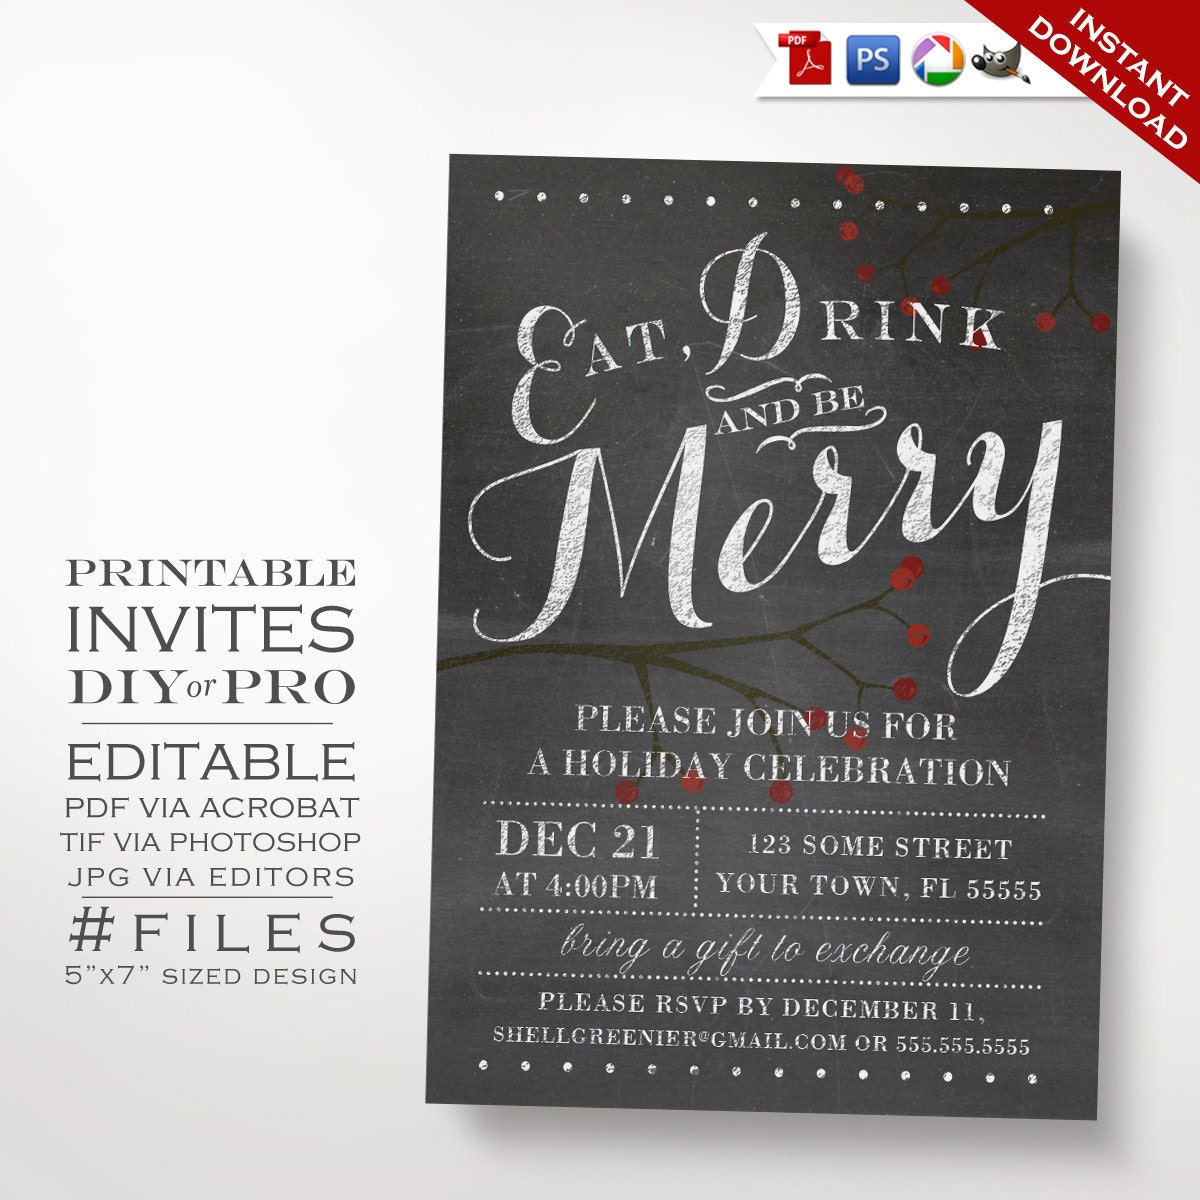 holiday party invite christmas invitation template winter chalkboard holiday party invitation printable diy christmas party invitation editable holiday event